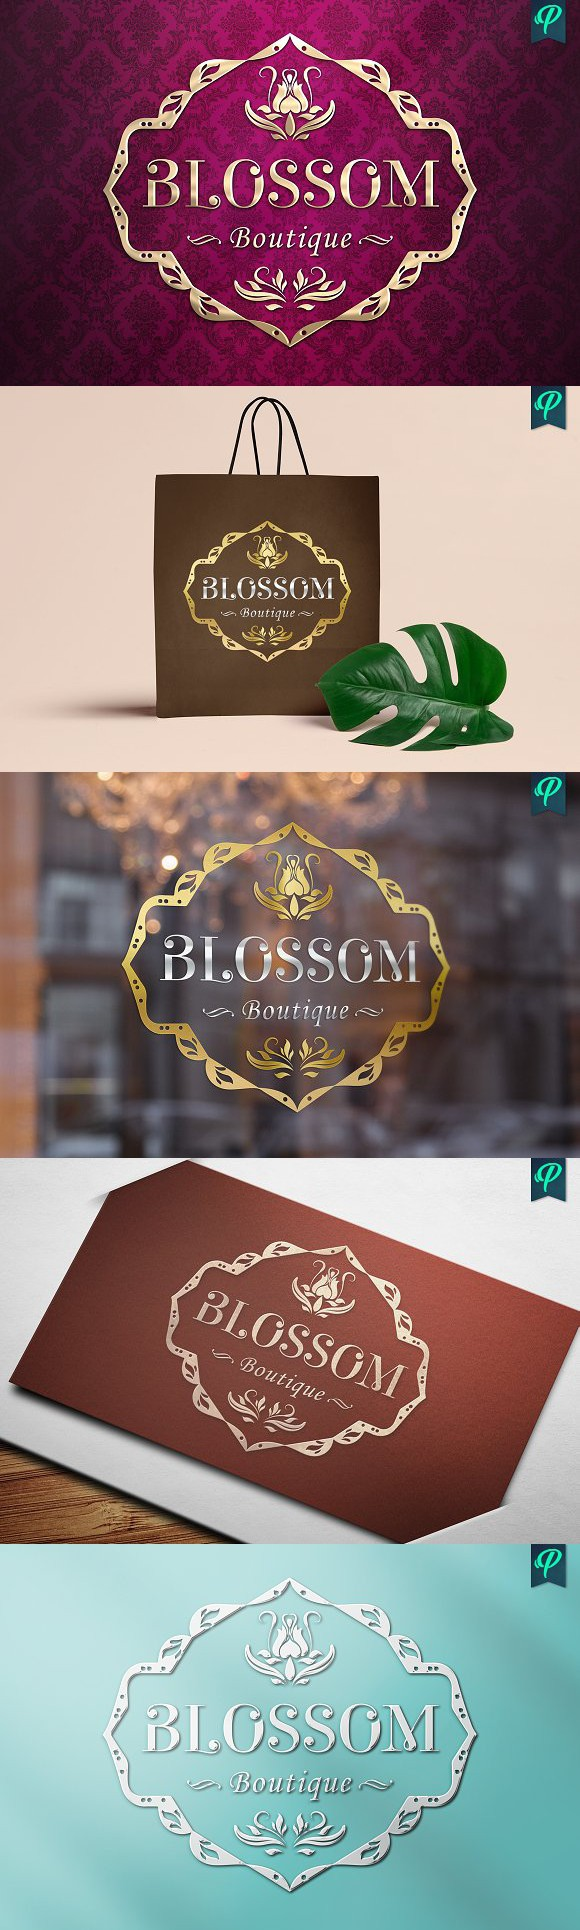 wedding invitation label templates%0A Blossom Boutique Logo Template  Wedding Card Templates